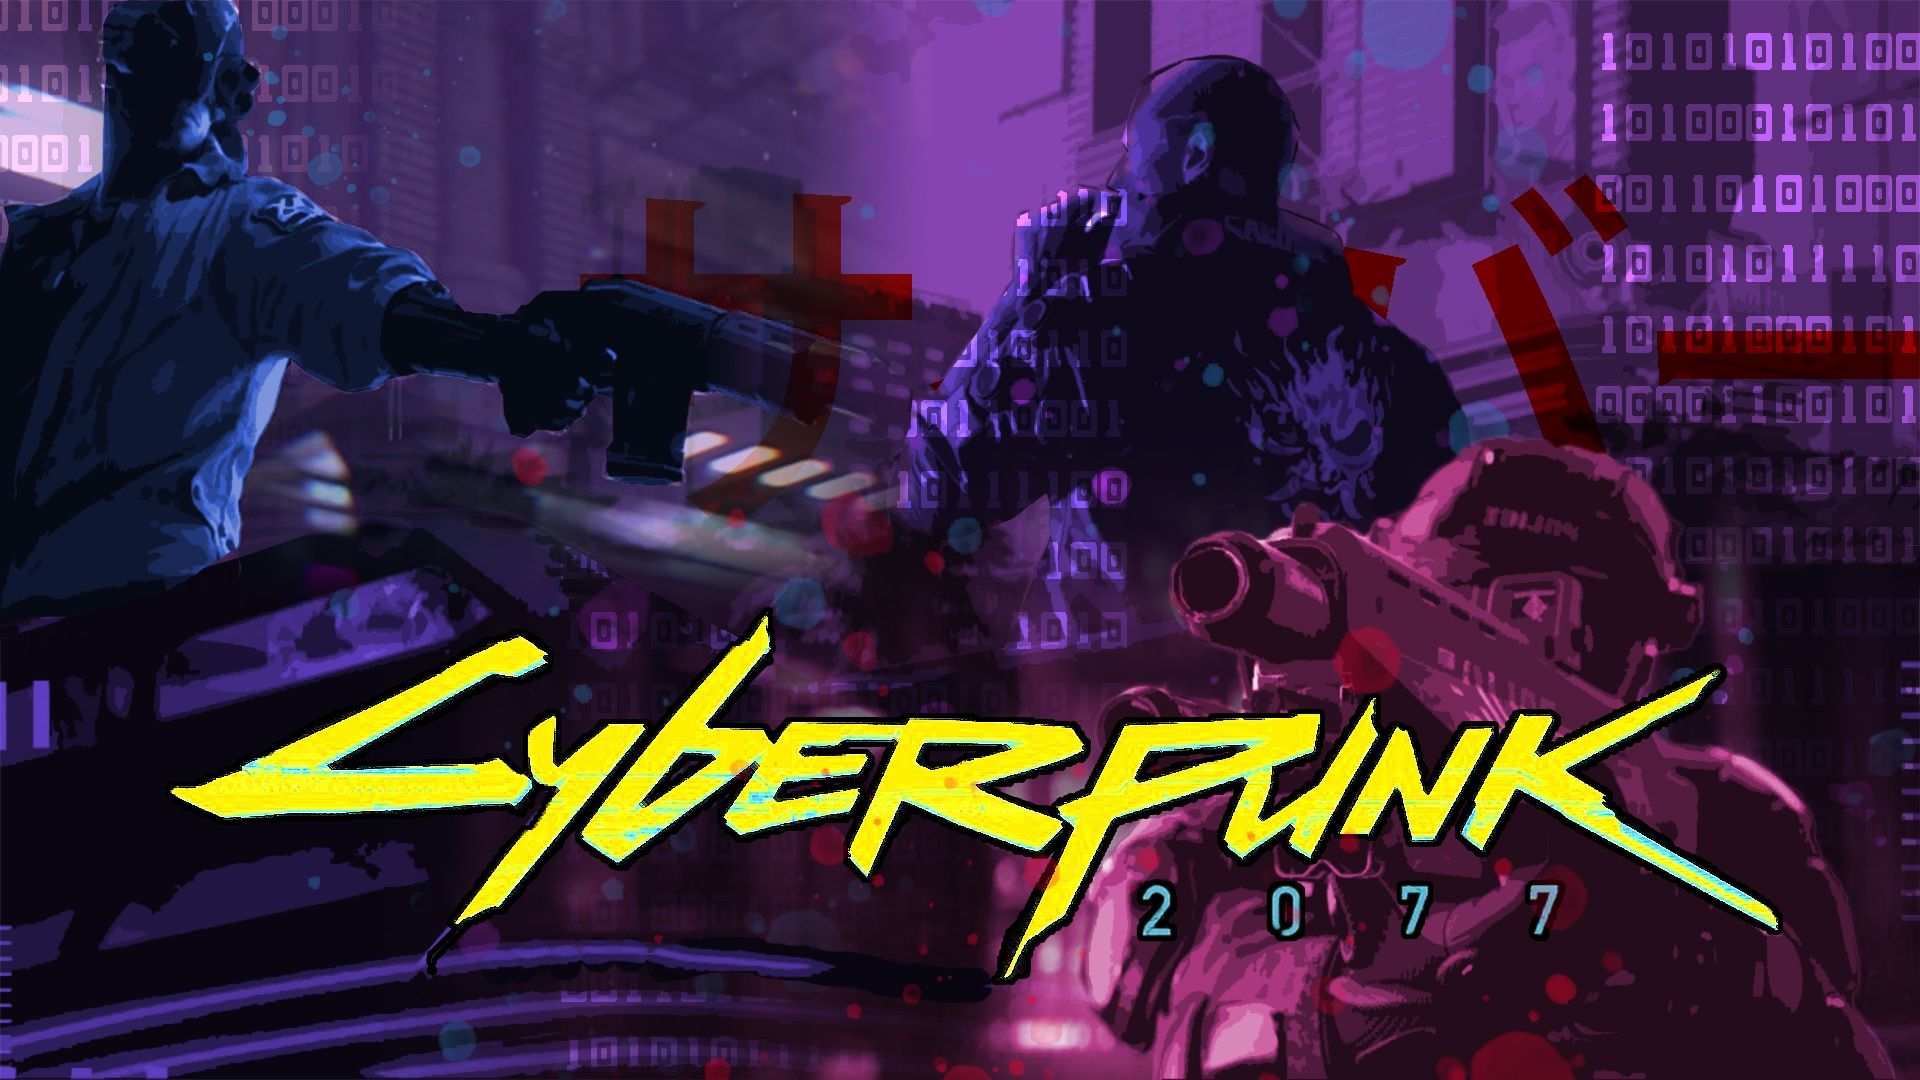 Cyberpunk2077wallpaper Cyberpunk 2077 Cyberpunk Wallpaper